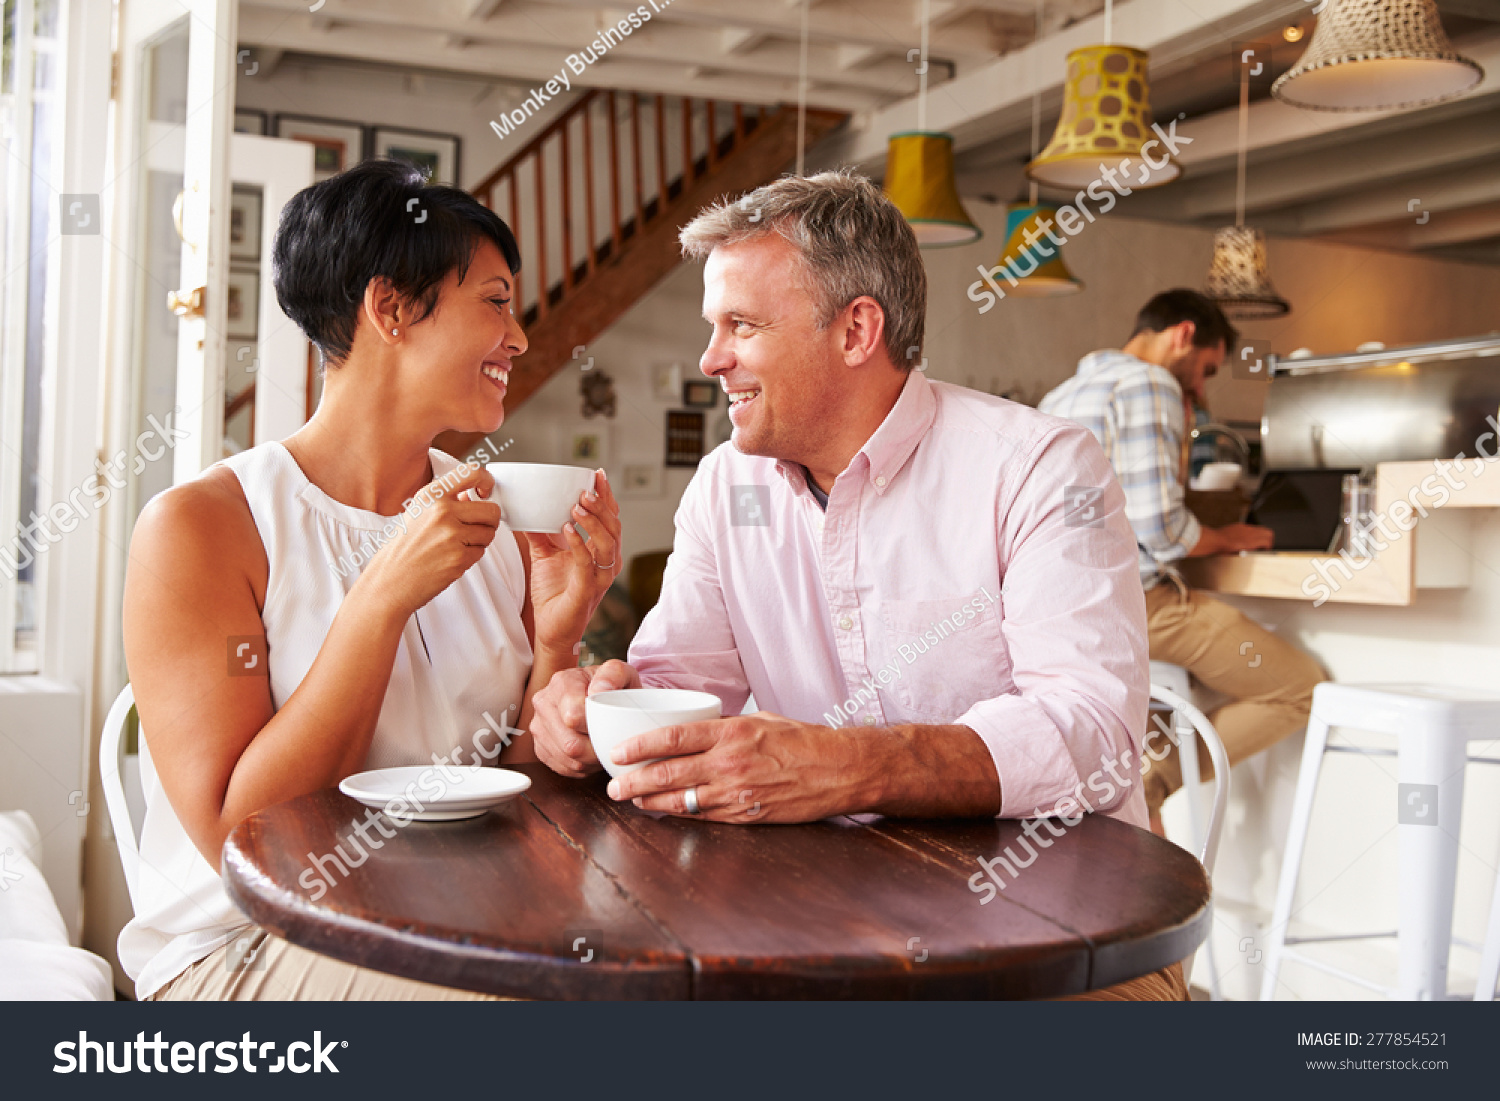 dating website for middle aged The case for an older woman how dating preferences change with age so you can see how differently women think about dating and age toward middle age.